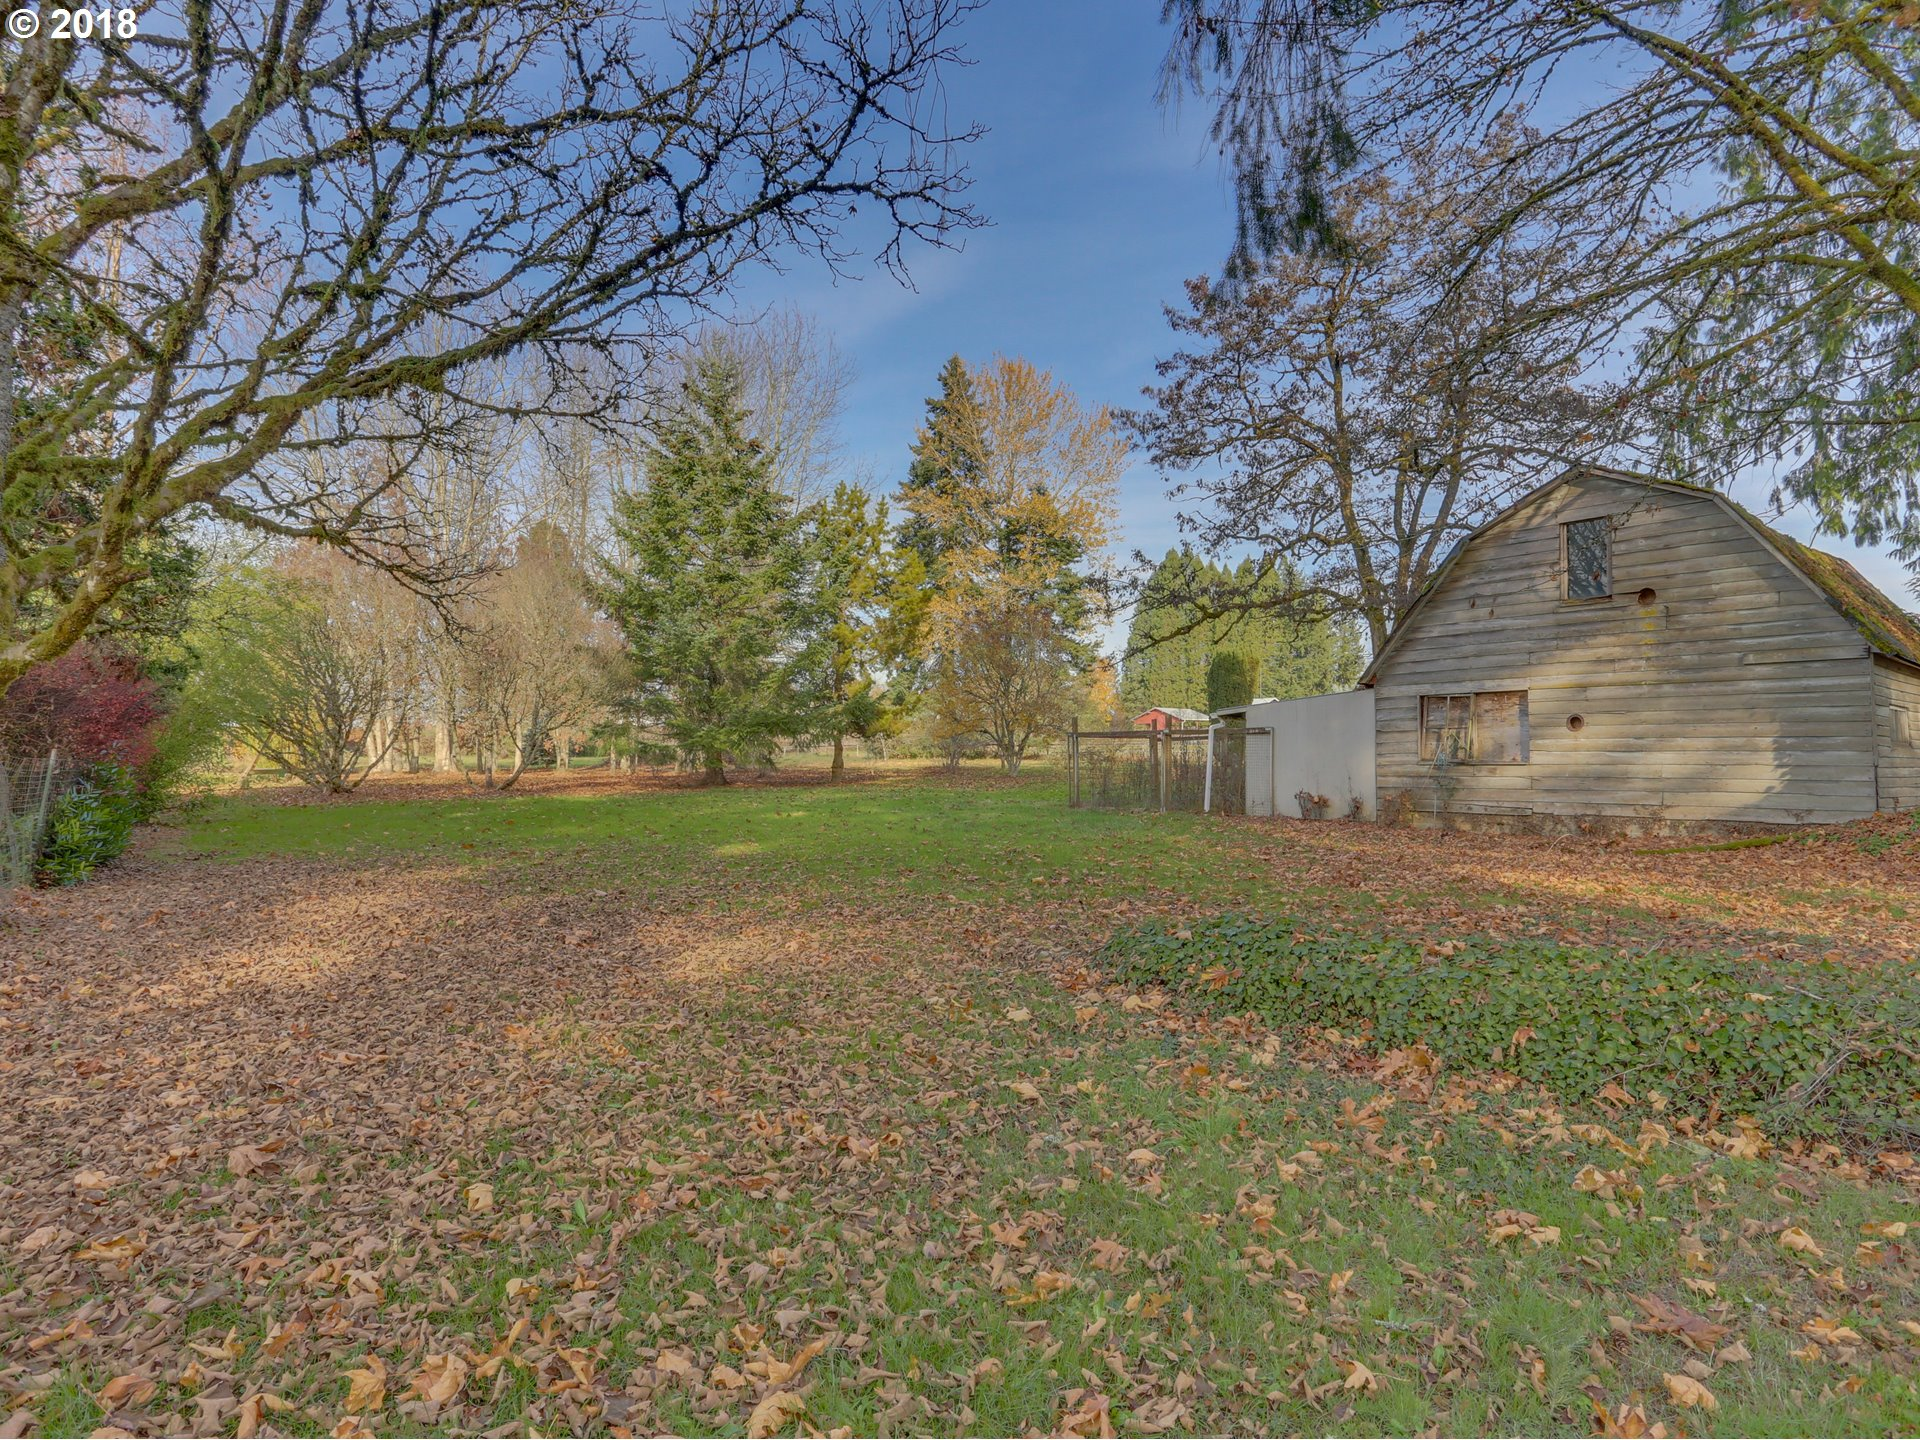 30905 SE HALEY RD Boring, OR 97009 - MLS #: 18376977